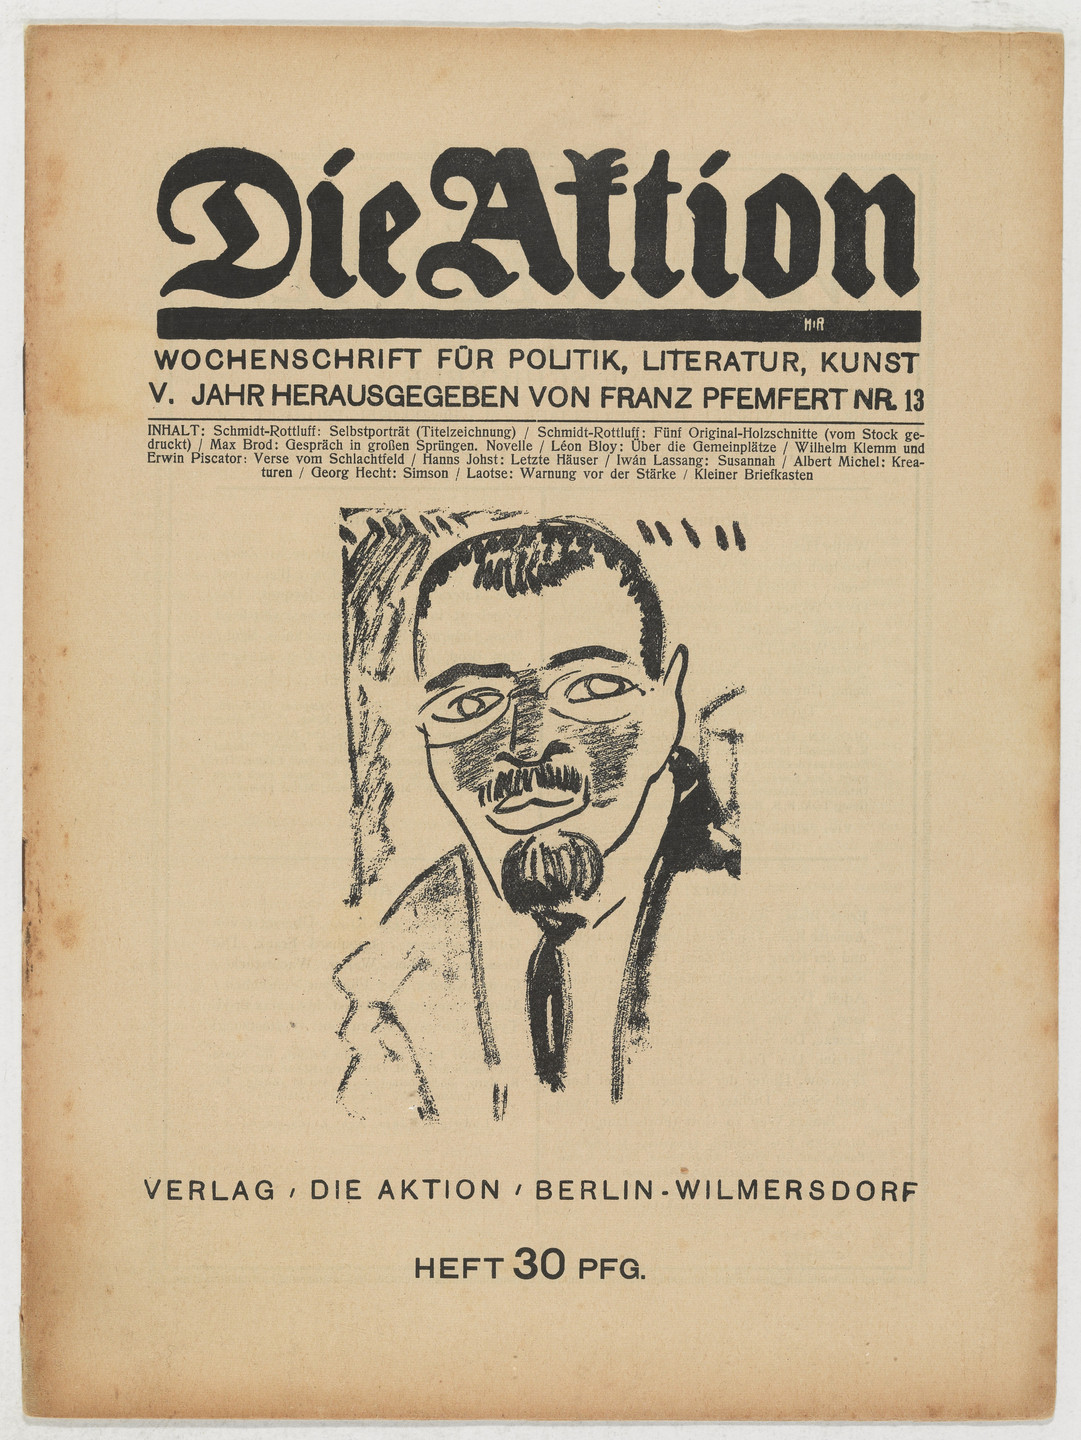 Karl Schmidt-Rottluff. Die Aktion, vol. 5, no. 13. March 20, 1915